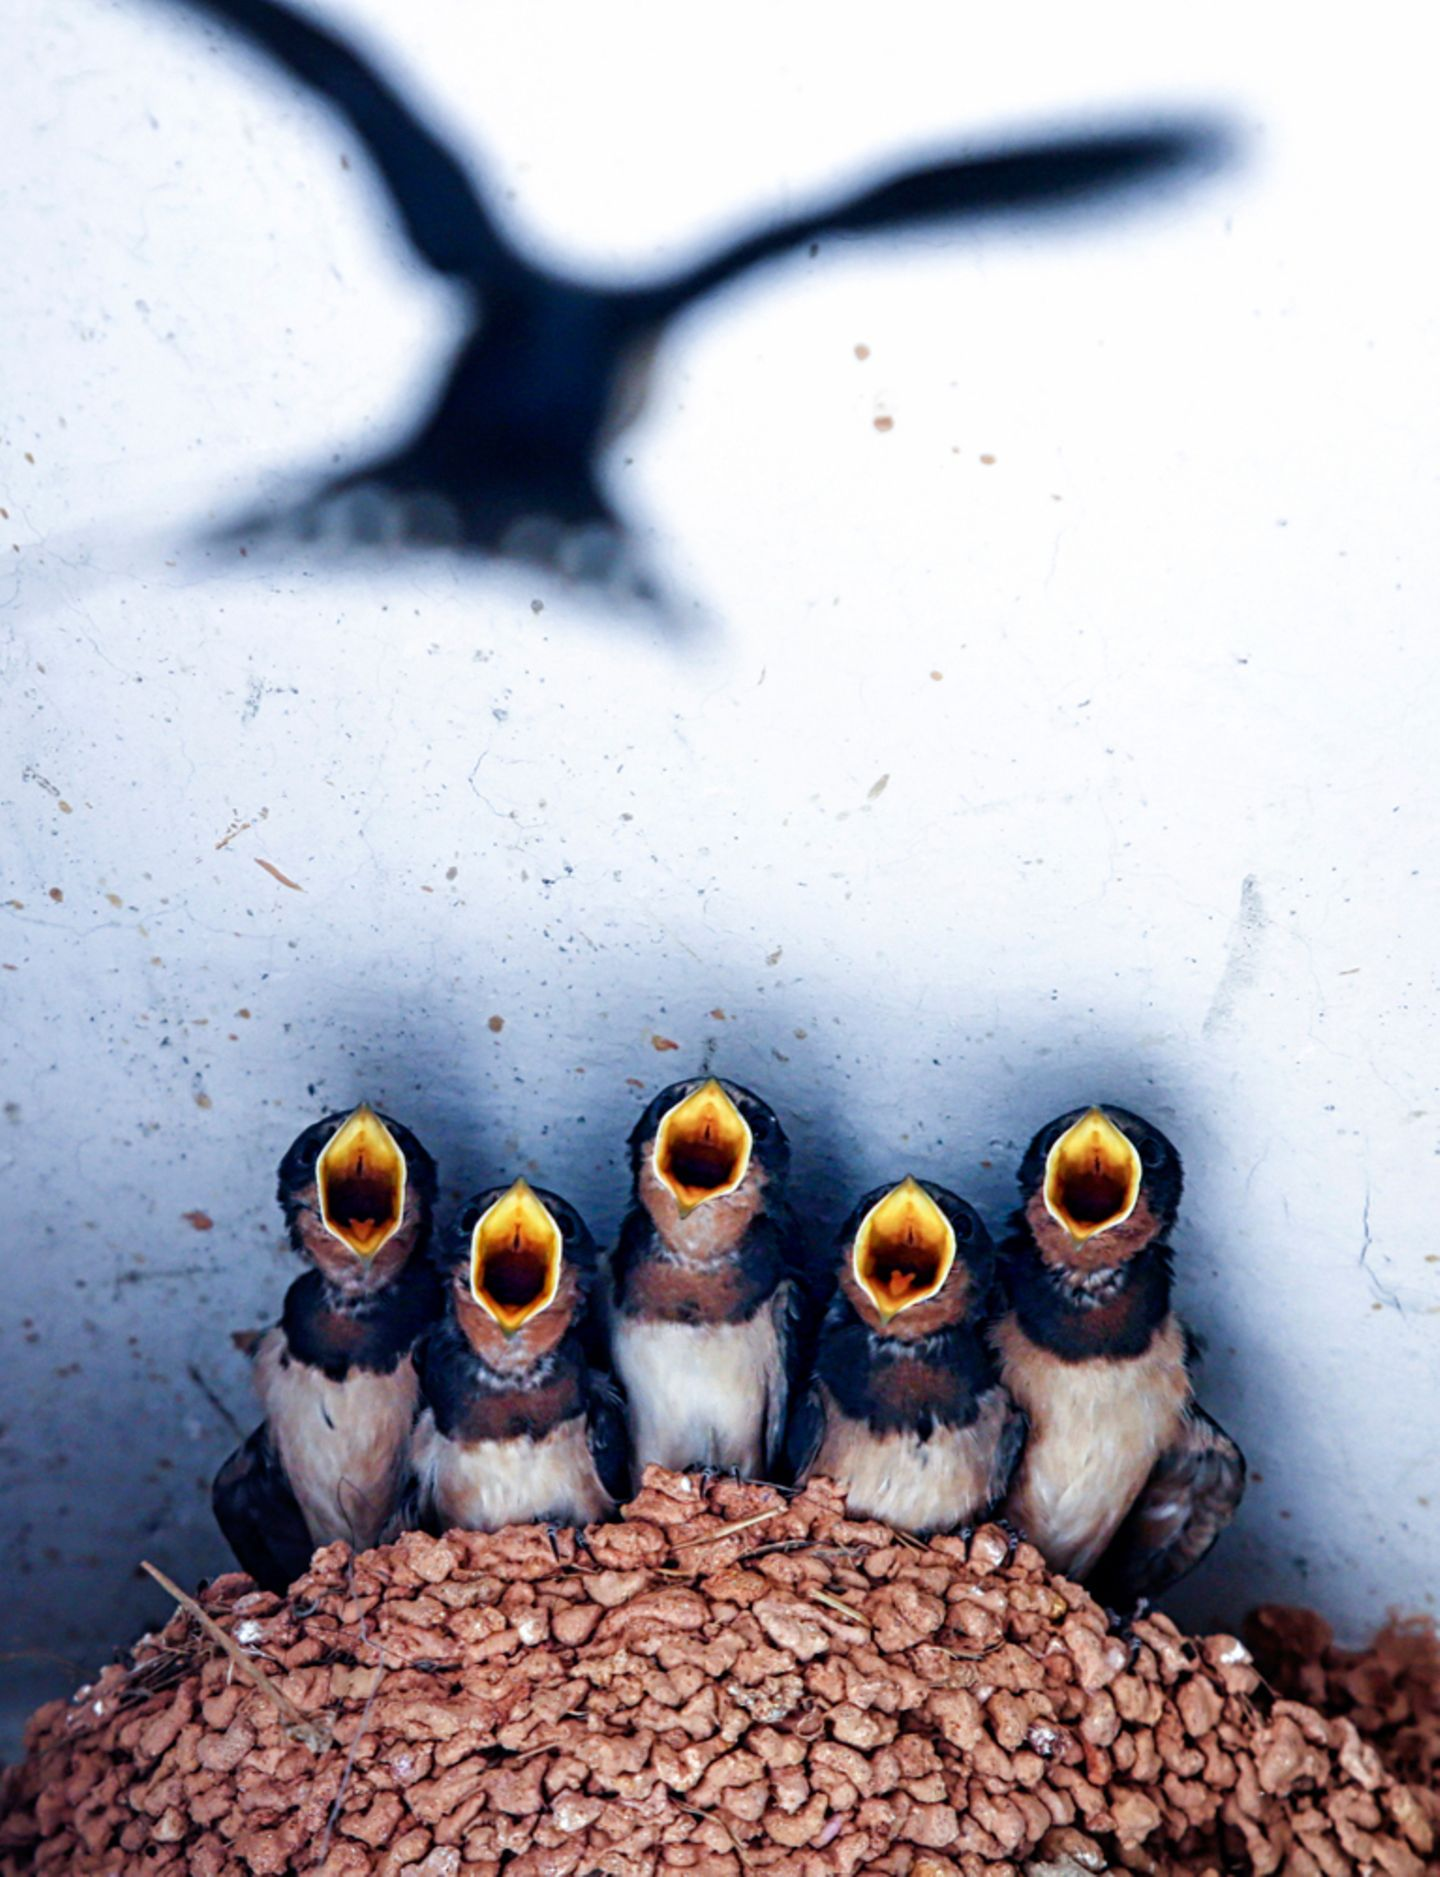 Image Name: mom's baby  Photographer Name: Fan Chen  Year: 2017  Image Description: <p>lovely swallows are waiting for mother t…